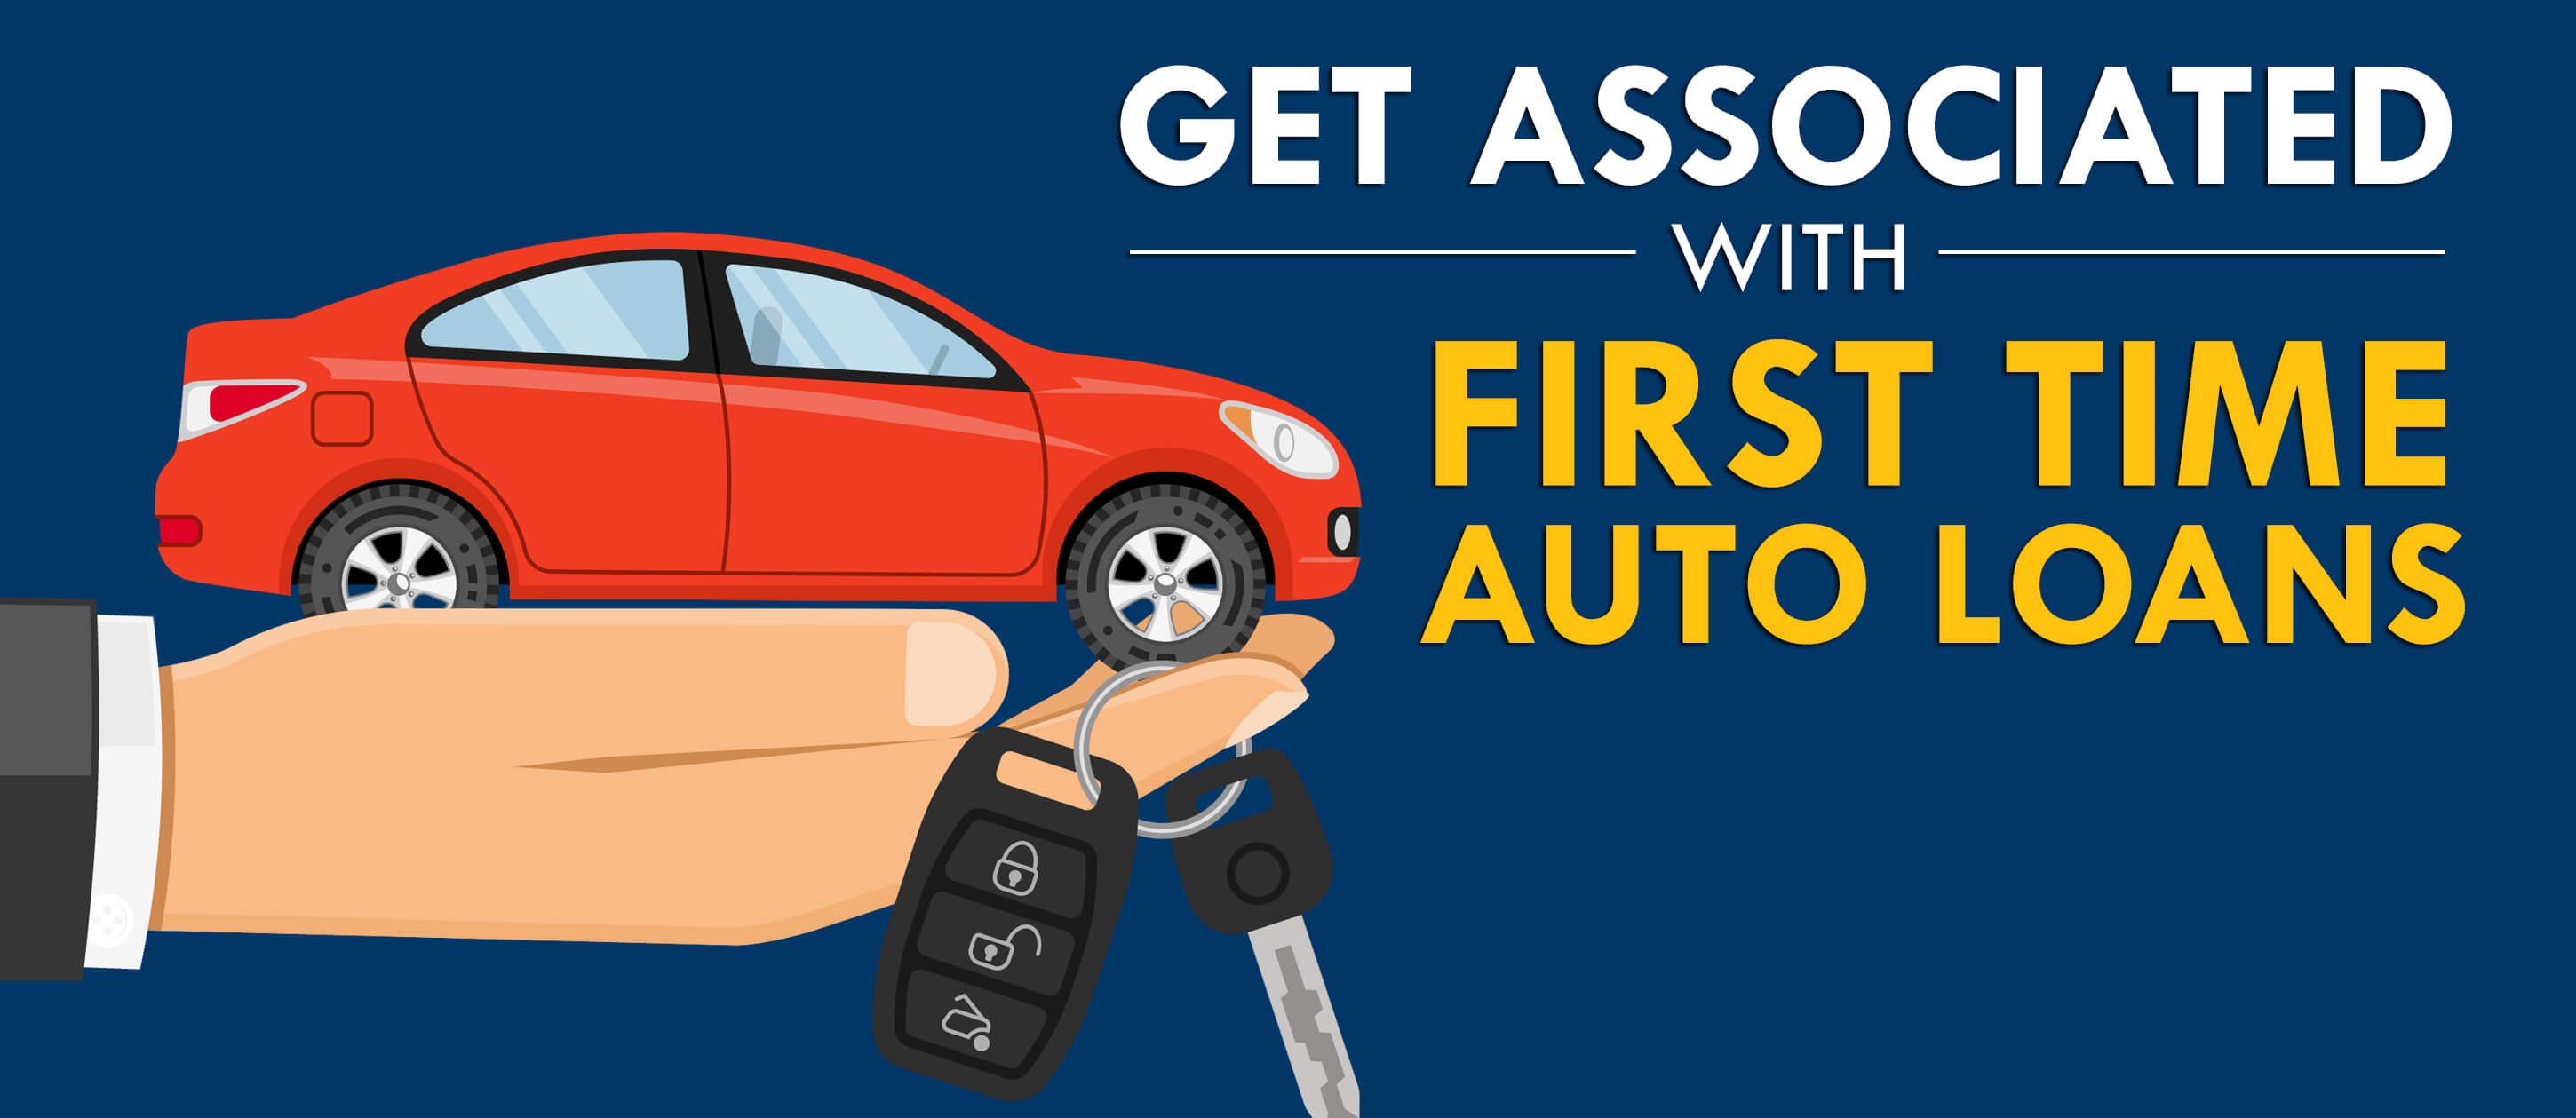 First Time Auto Loans